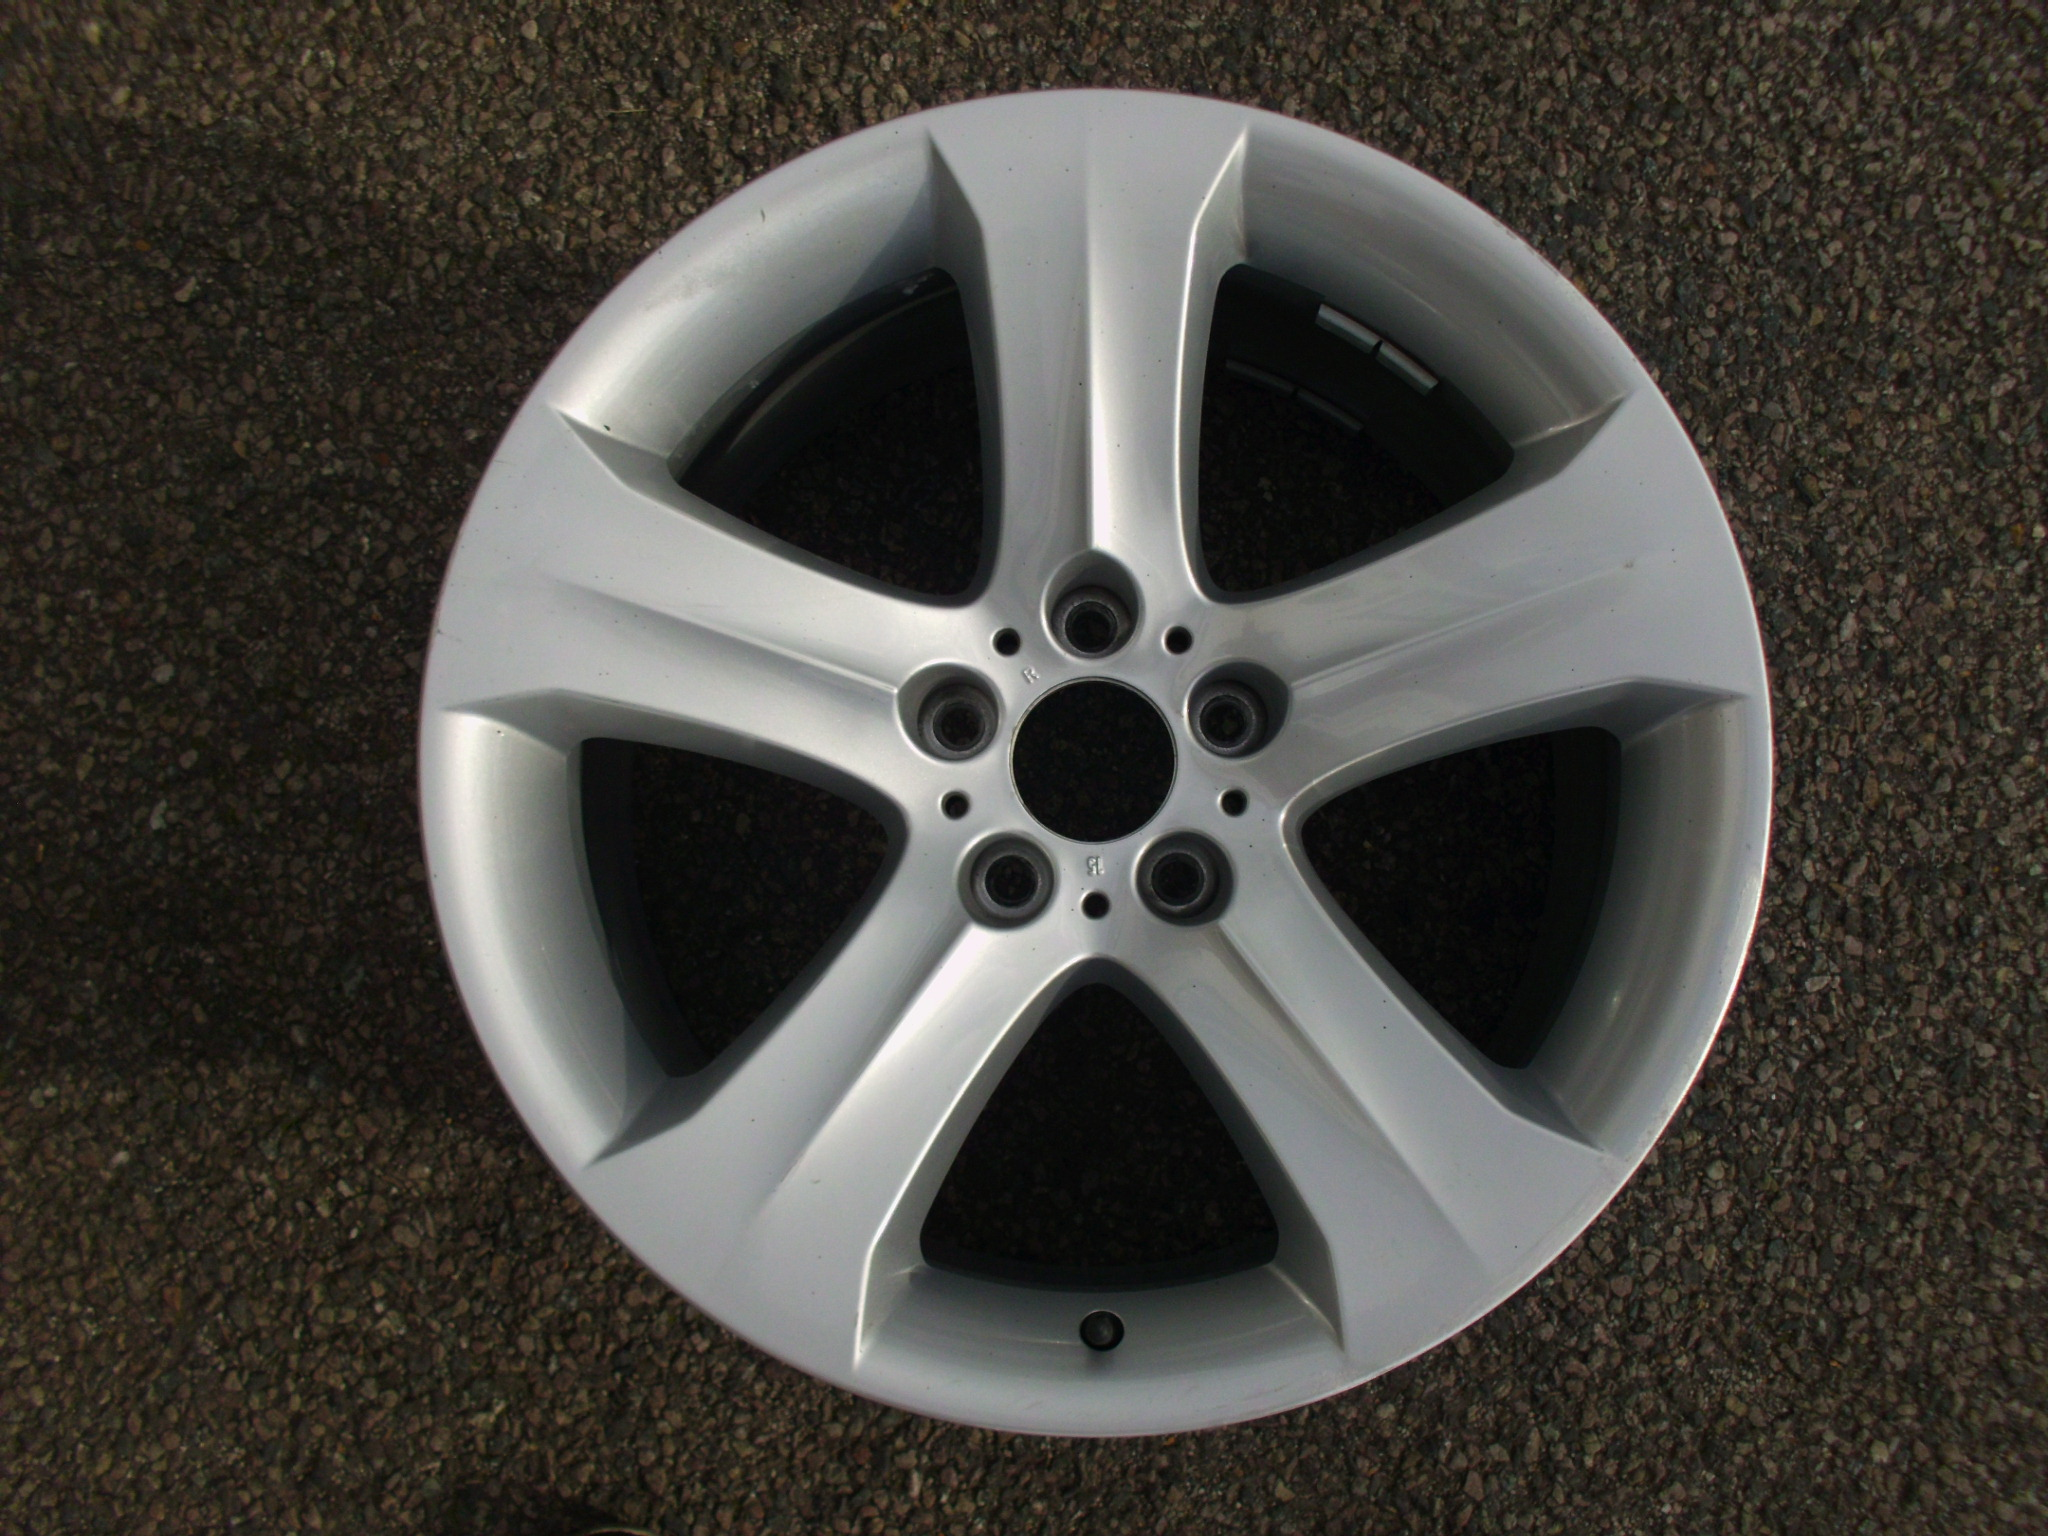 "USED SINGLE 19"" GENUINE BMW E71 X6 REAR STYLE 258 ALLOY WHEEL, GOOD CLEAN CONDITION"